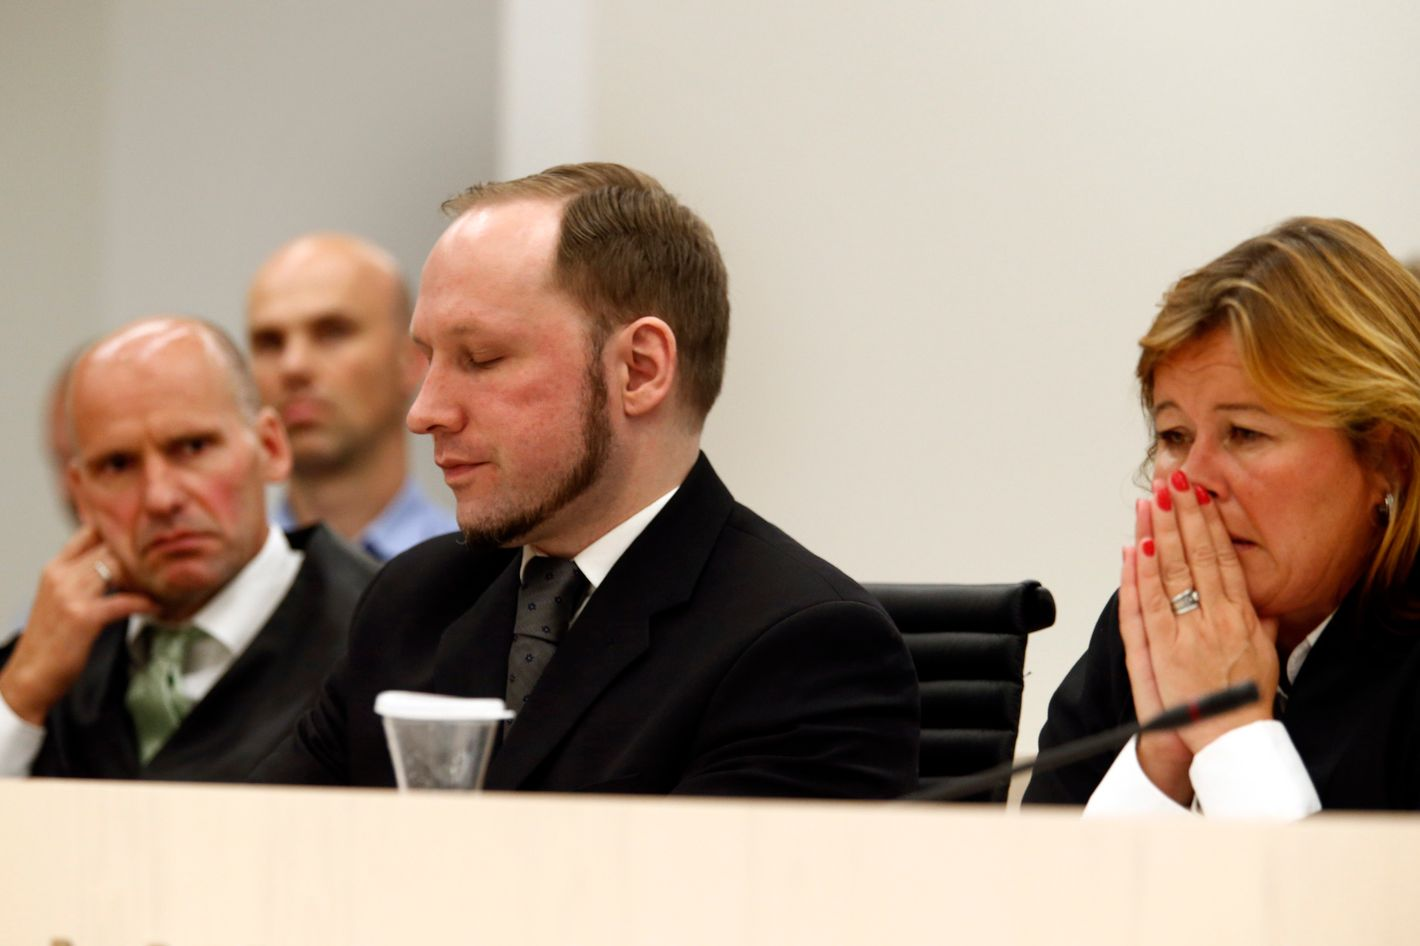 "Defender Geir Lippestad (left) and defender Vibeke Hein Baera sit together with terror accused Anders Behring Breivik when Oslo Court passes judgment against him in Oslo Courthouseon August 24, 2012. The court on Friday found Anders Behring Breivik guilty of ""acts of terror"" and sentenced him to 21 years in prison for his killing spree last year that left 77 people dead."